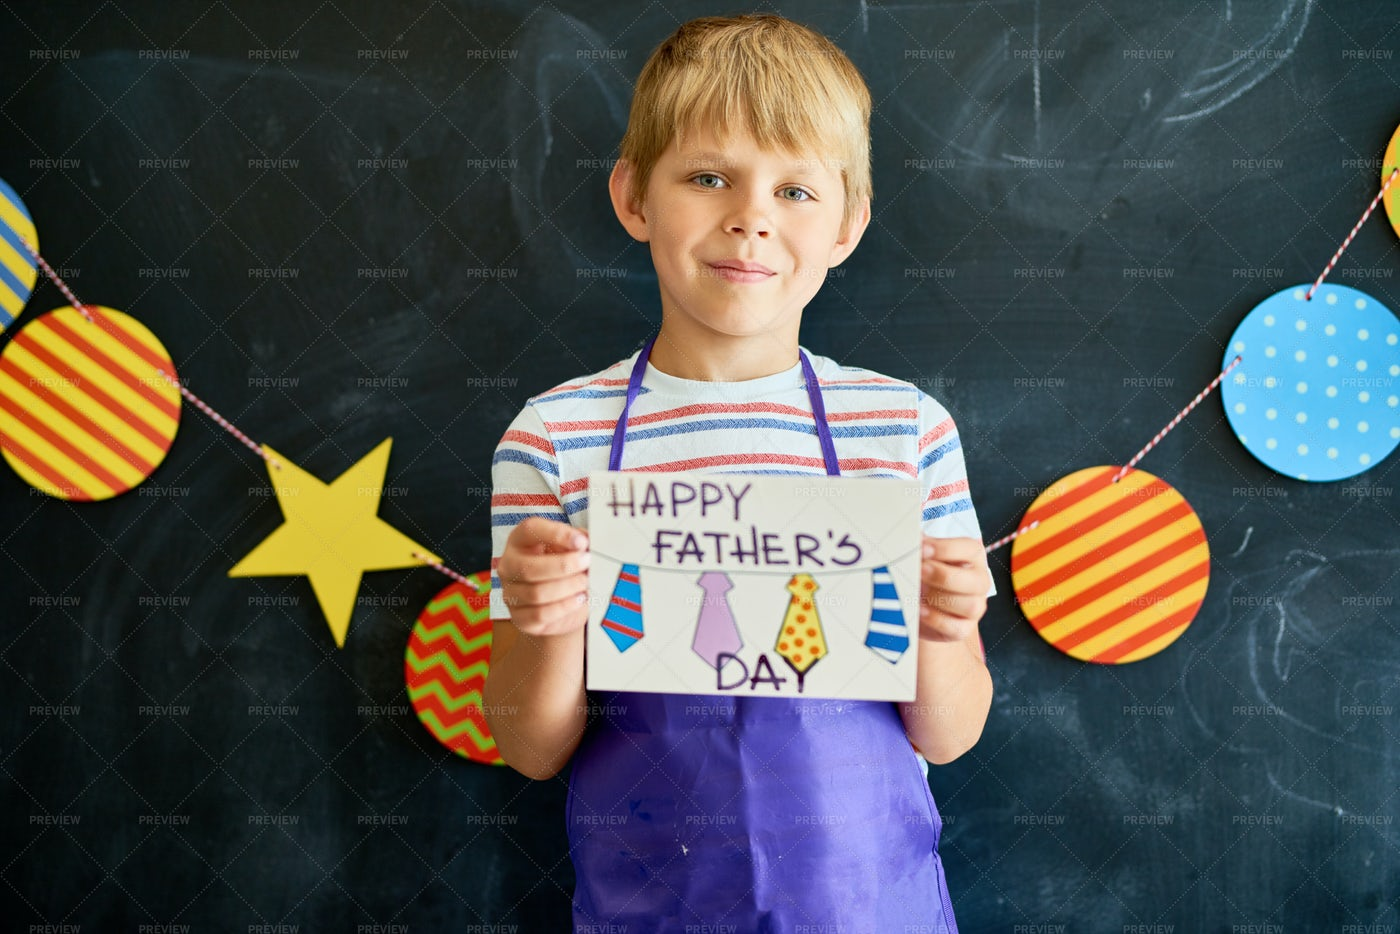 Little Boy Holding Gift Card For...: Stock Photos